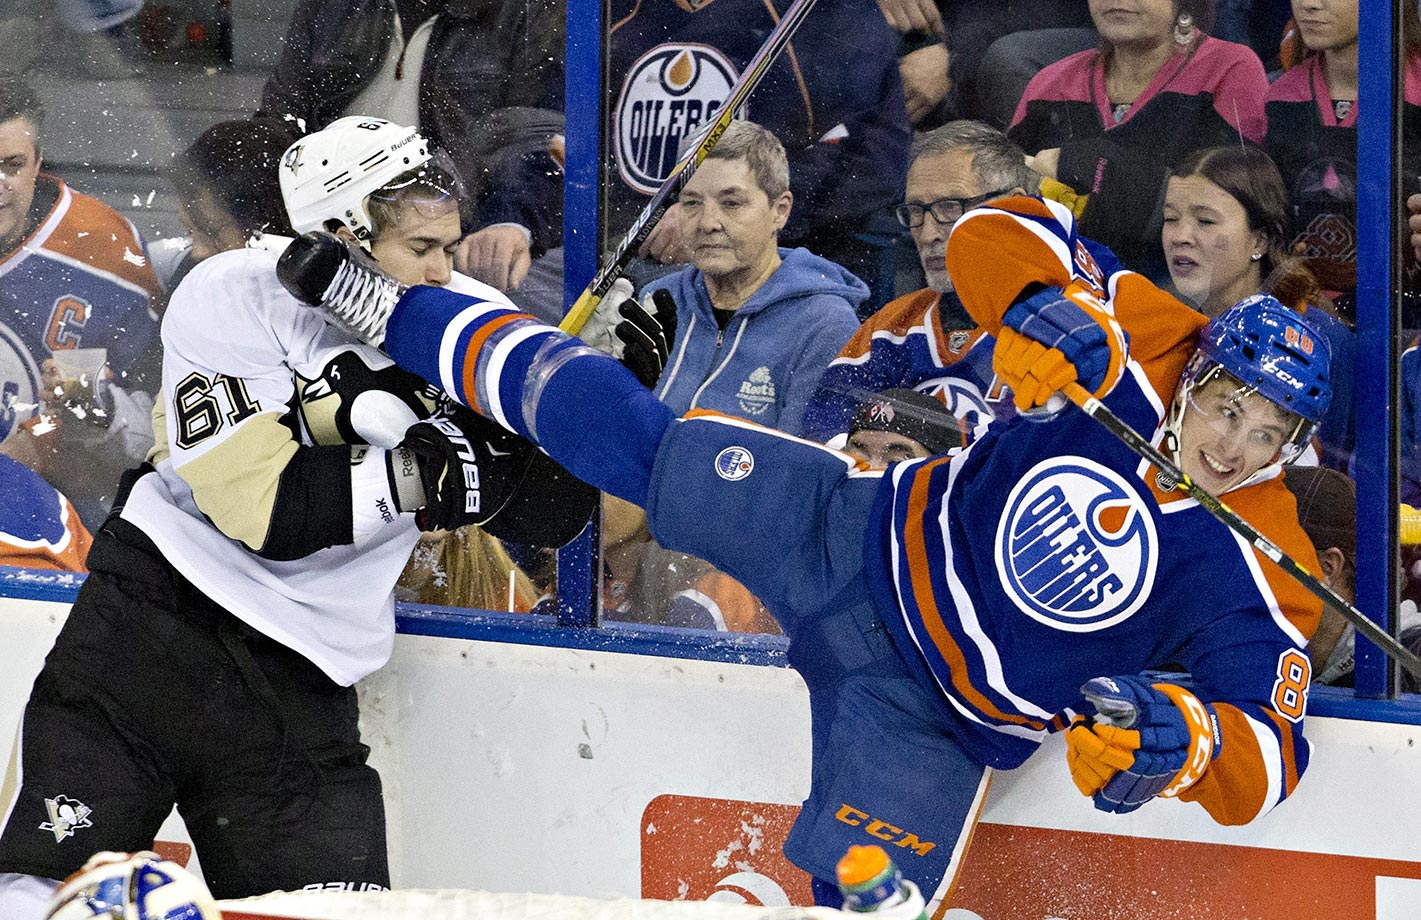 Sergei Plotnikov of the Pittsburgh Penguins gets a skate from Brandon Davidson of the Edmonton Oilers.